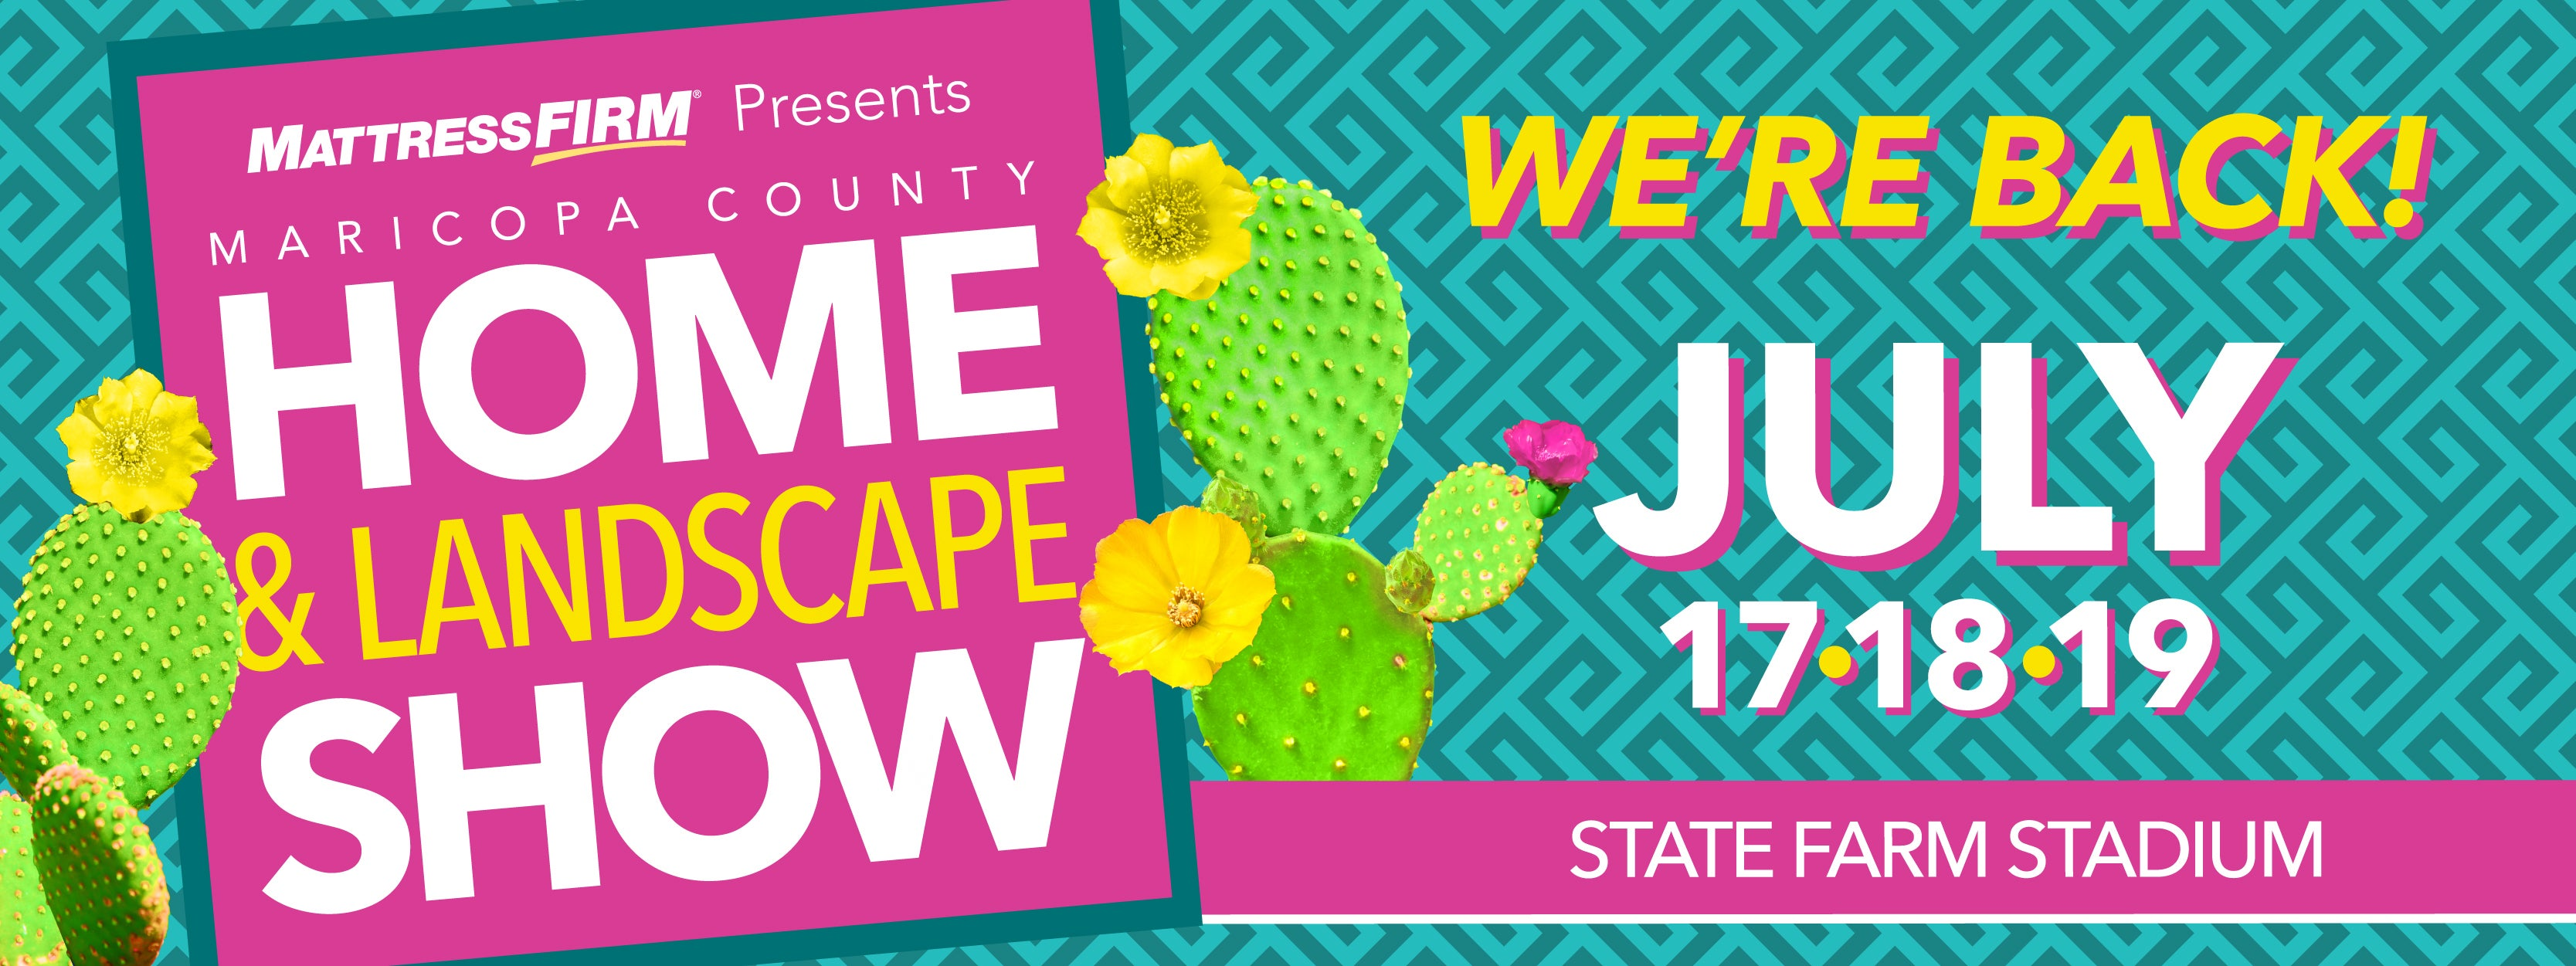 Maricopa County Home & Landscape Show - Cancelled